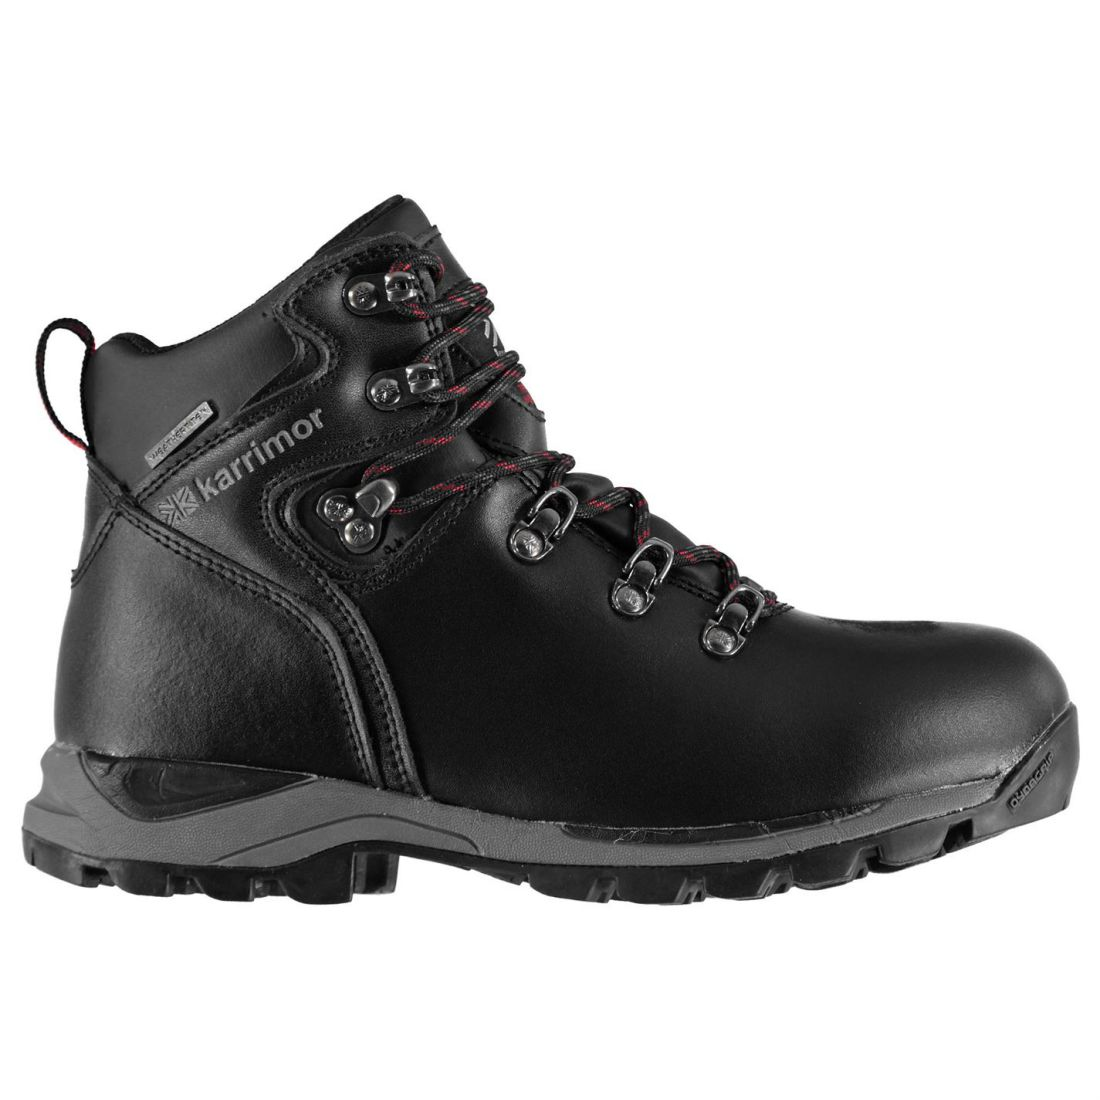 8126a5d60ef Details about Karrimor Skido Walking Waterproof Hiking Boots Lace Up Junior  Childrens